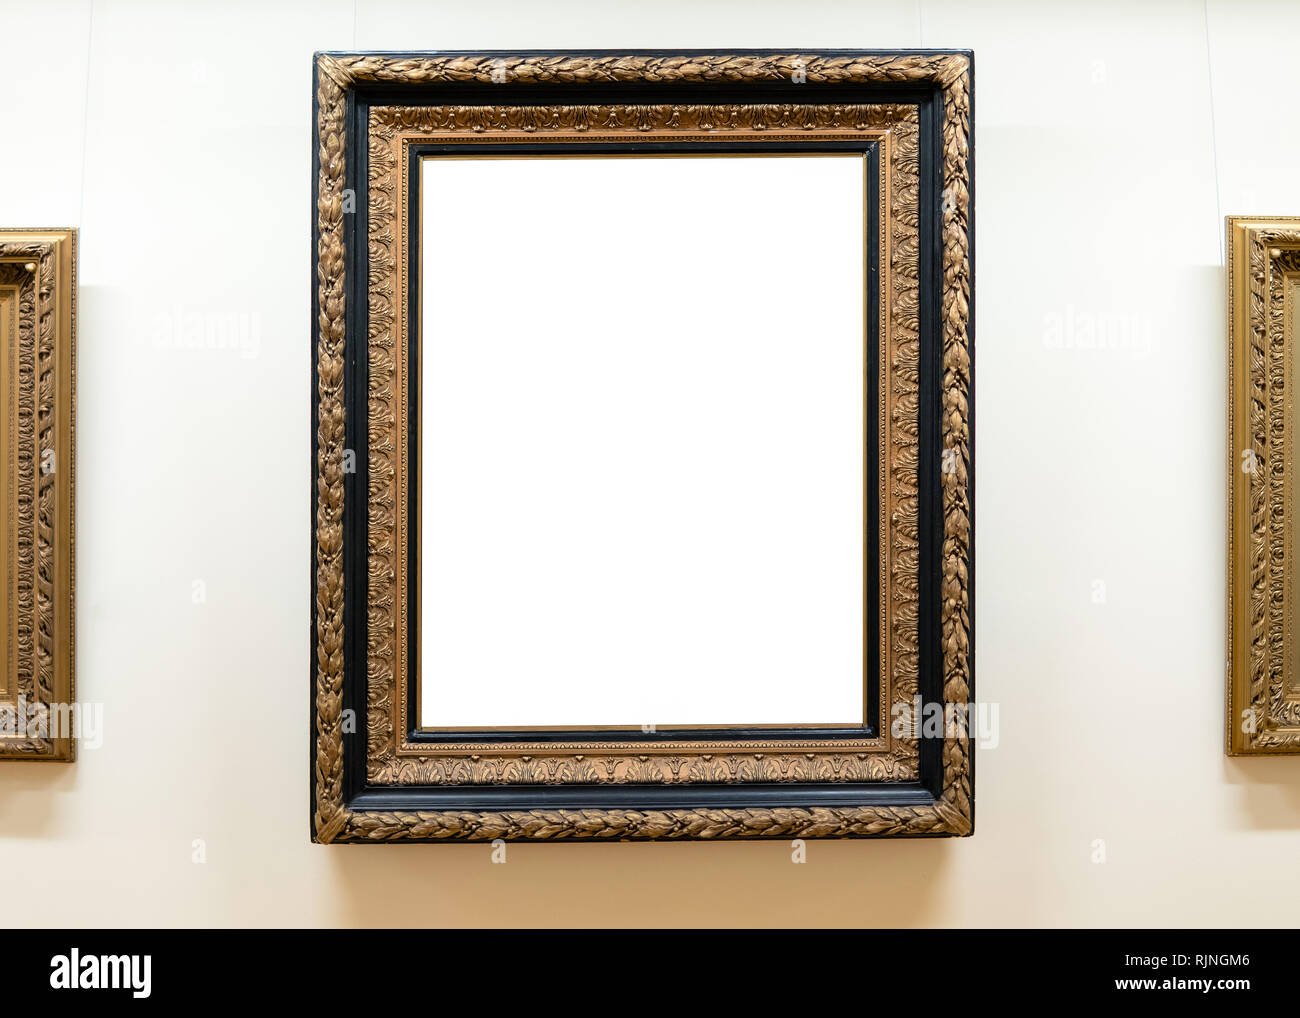 blank empty frames hanging on museum wall art gallery, museumblank empty frames hanging on museum wall art gallery, museum exhibition white clipping path